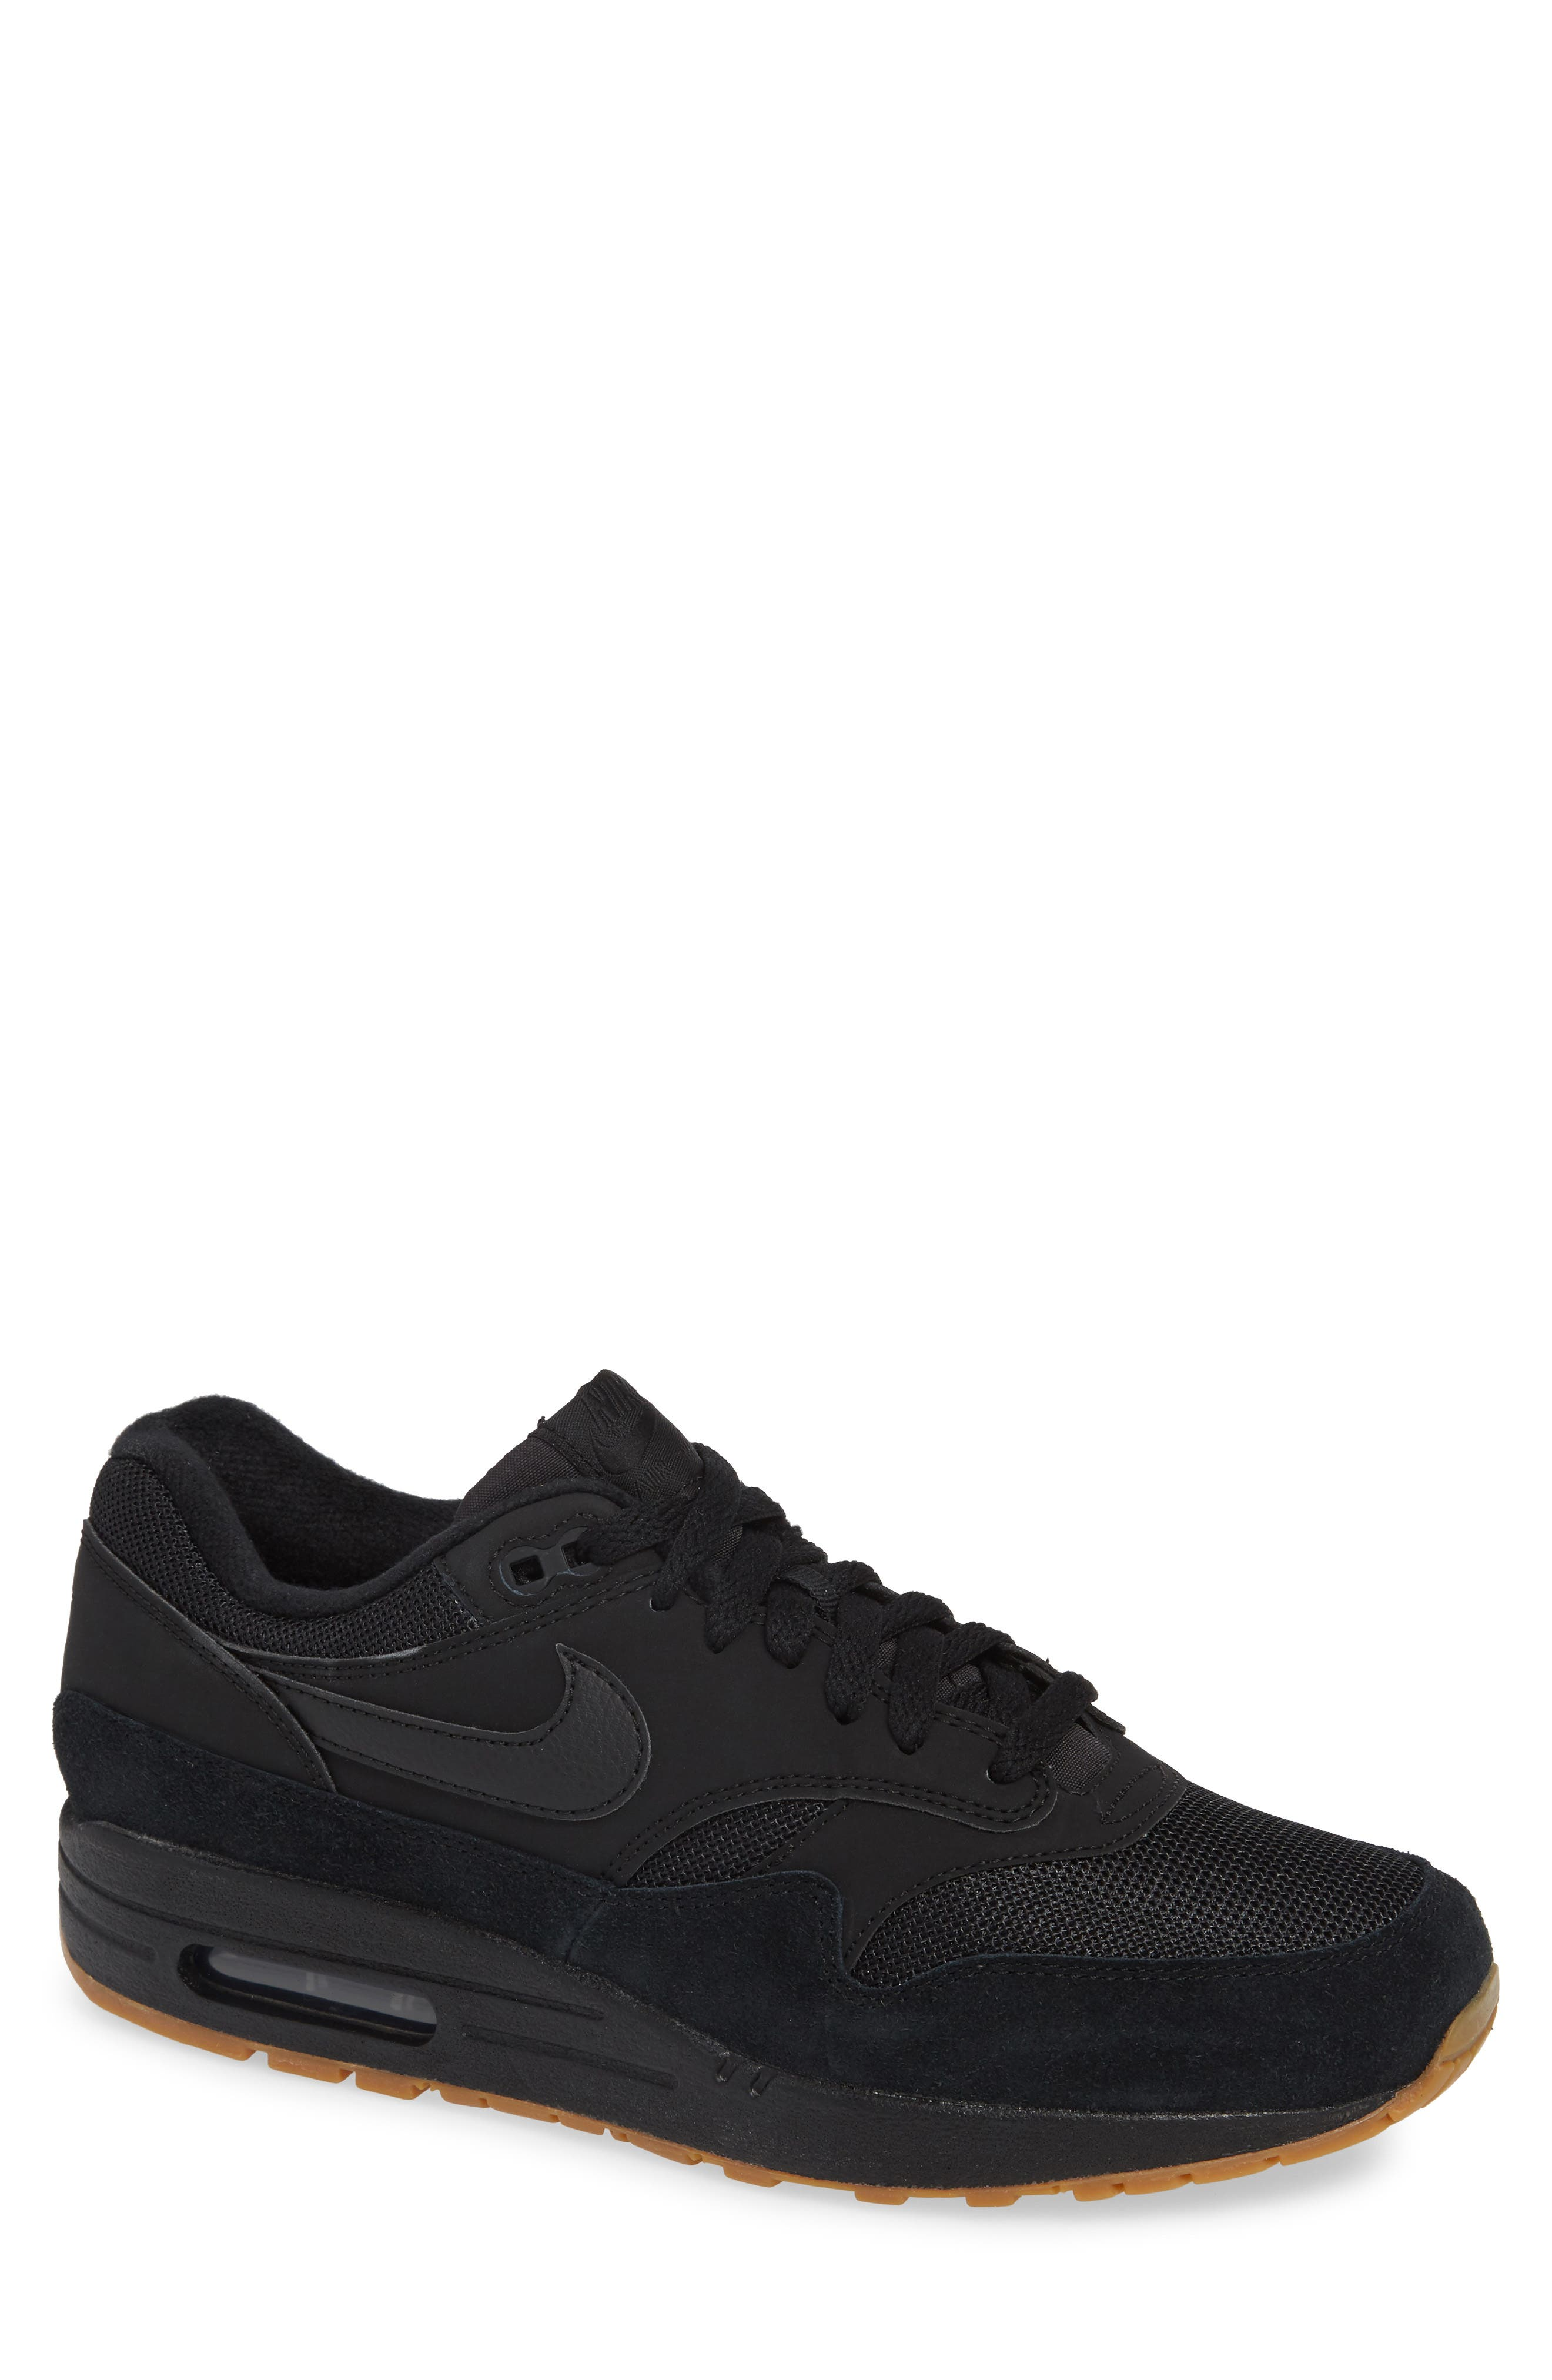 Air Max 1 Sneaker,                         Main,                         color, BLACK/ BLACK/ GUM MEDIUM BROWN